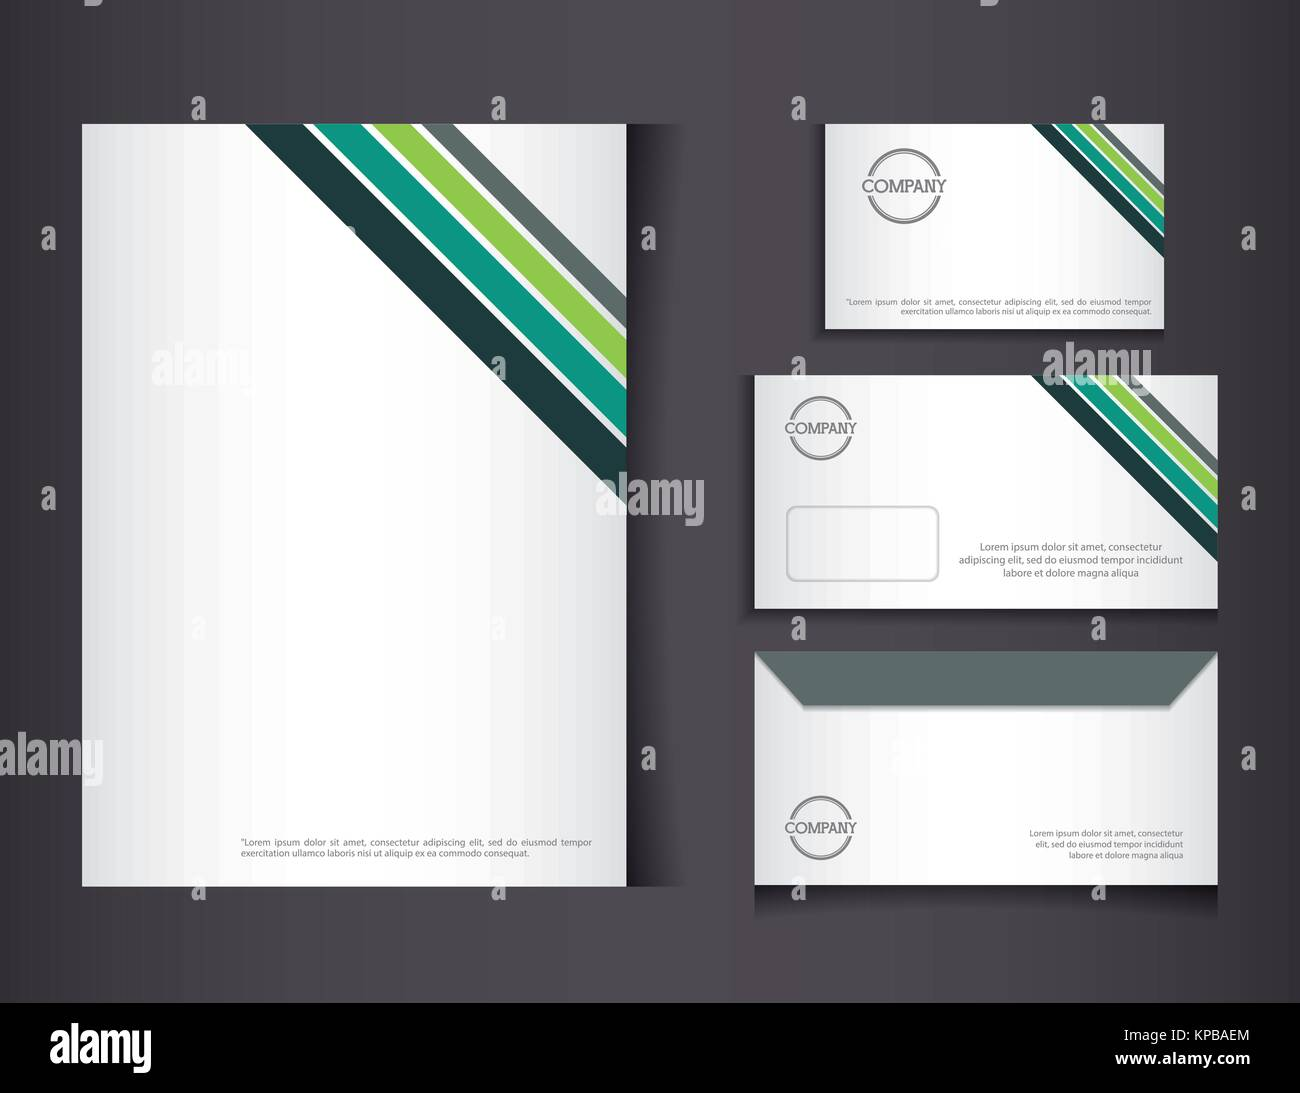 Editable Corporate Identity Stock Photos & Editable Corporate